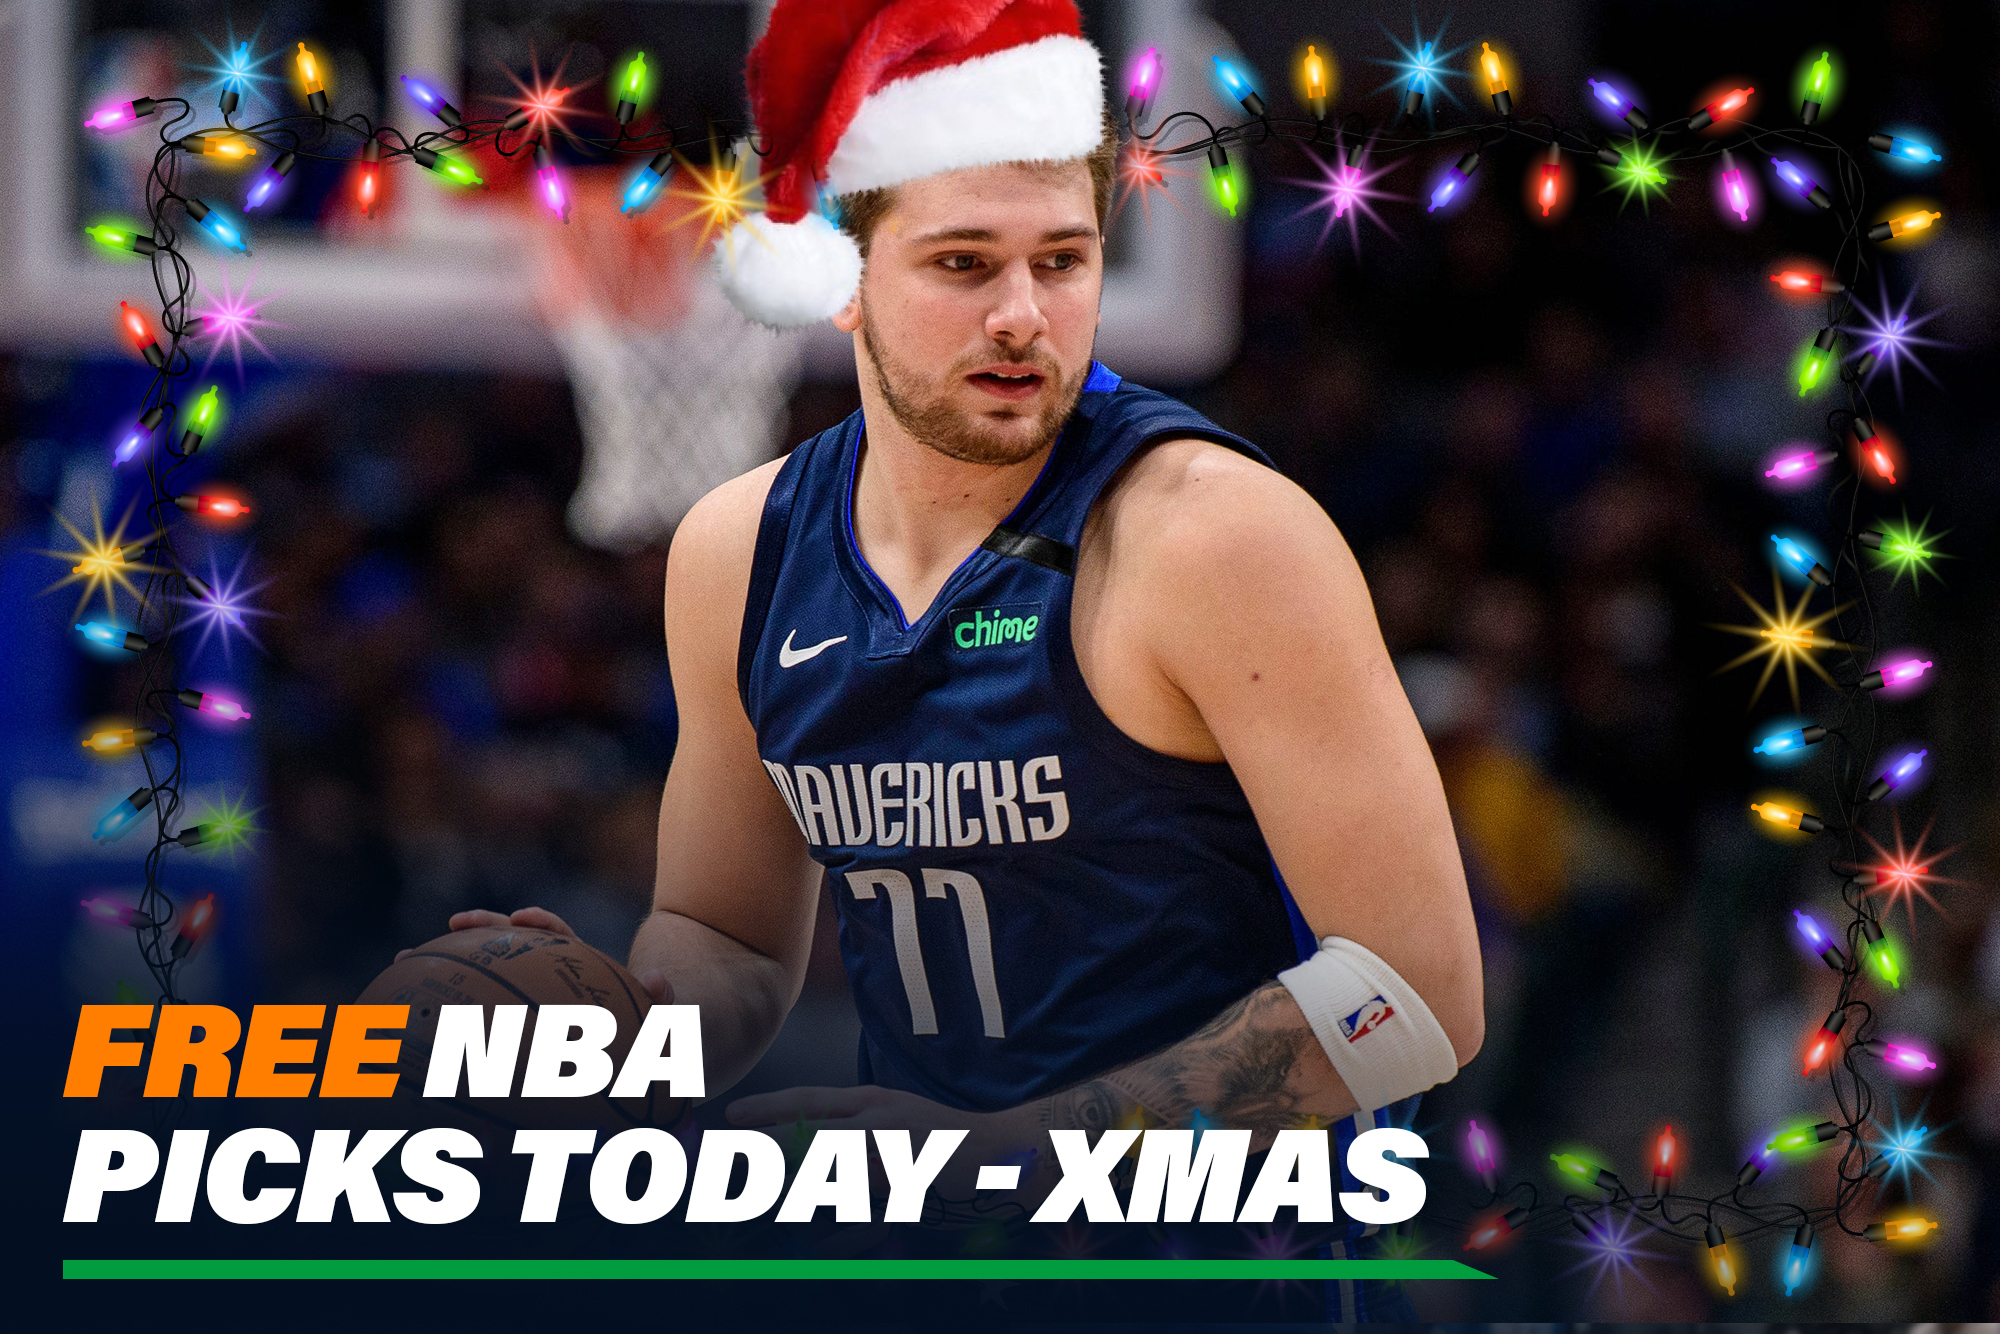 Free NBA Picks Today for Friday, December 25th, 2020